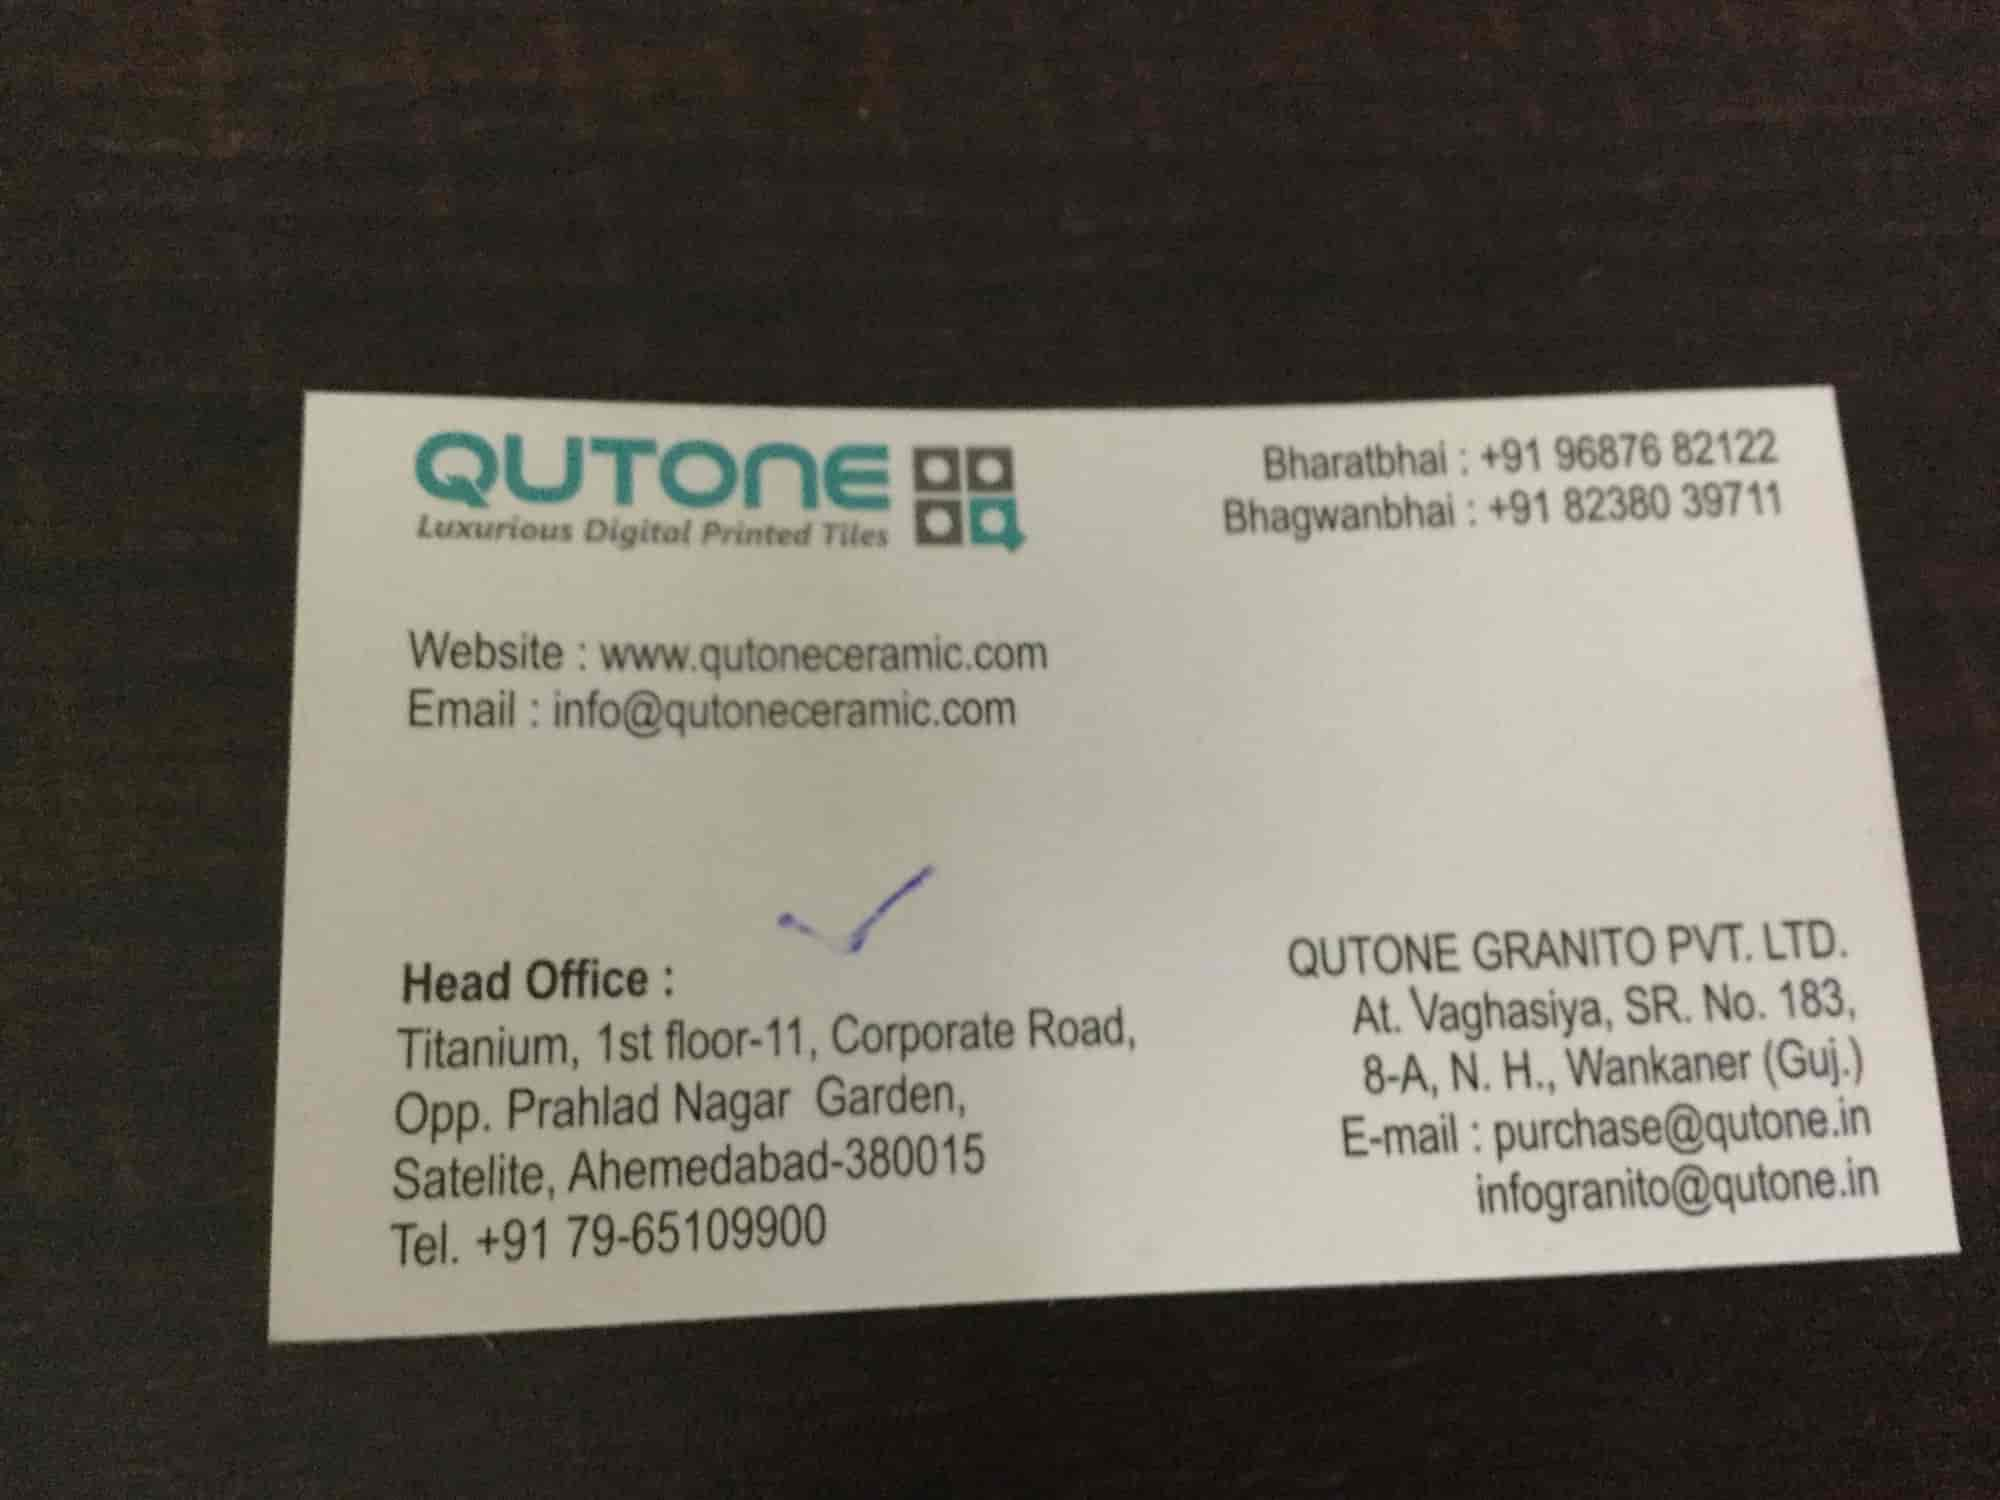 Qutone ceramic pvt ltd qutone ceramic pvt ltd tile qutone ceramic pvt ltd qutone ceramic pvt ltd tile manufacturers in morbi justdial dailygadgetfo Images